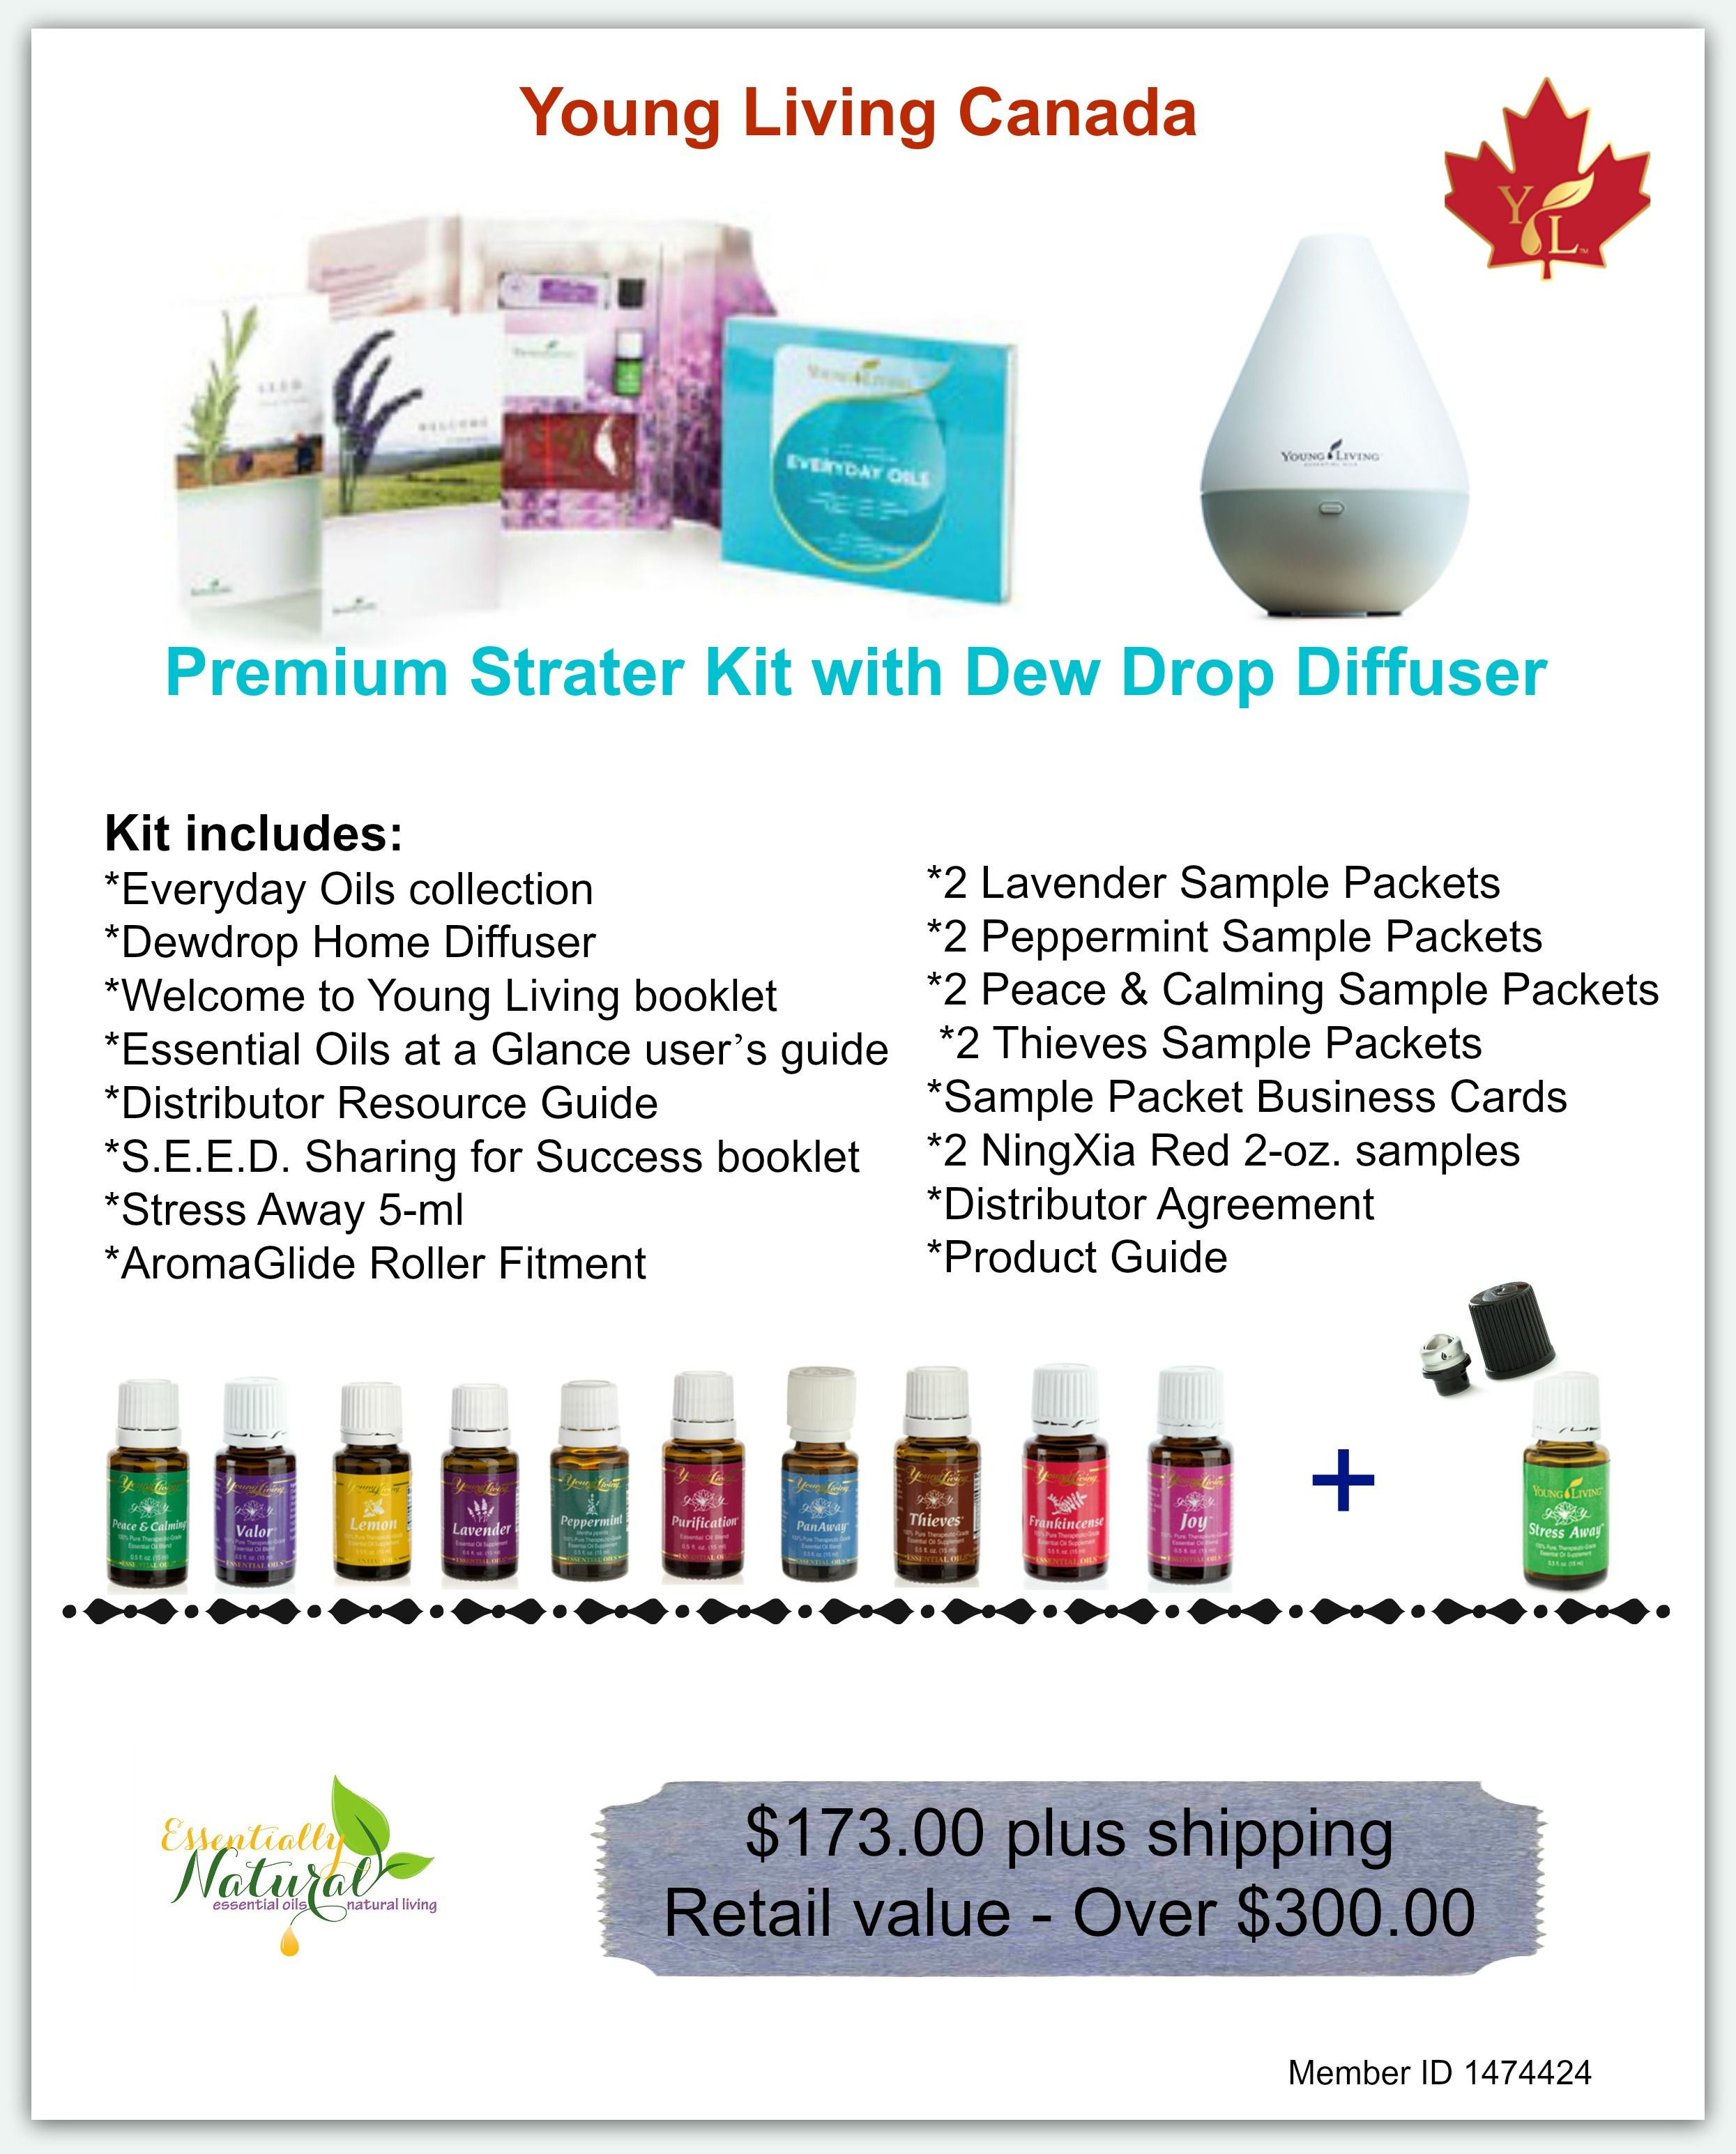 Starting December 1 2014 The Young Living Premium Starter Kit And Basic Plus